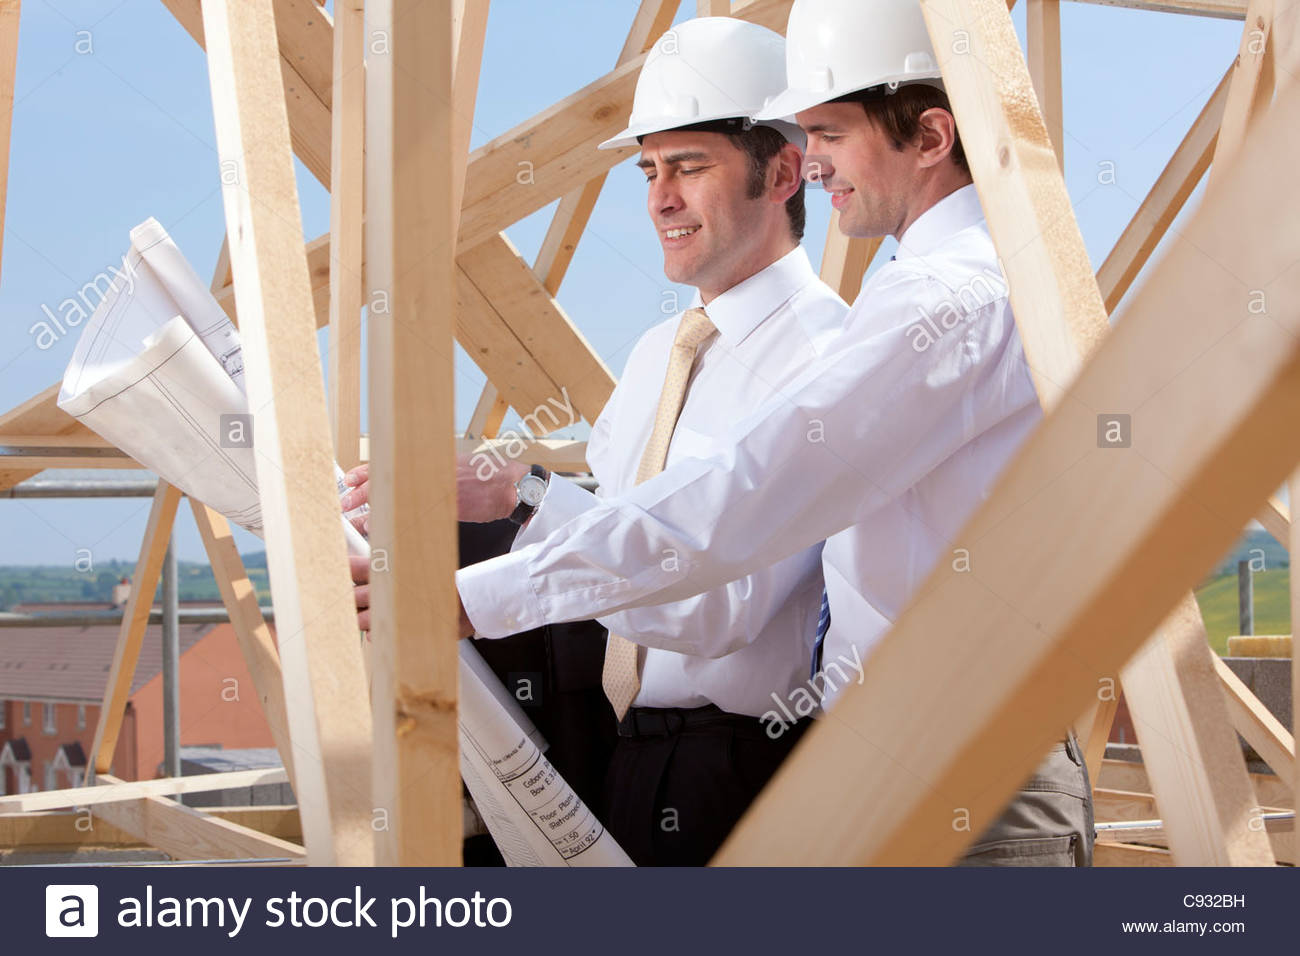 Architects reviewing blueprints at construction site - Stock Image